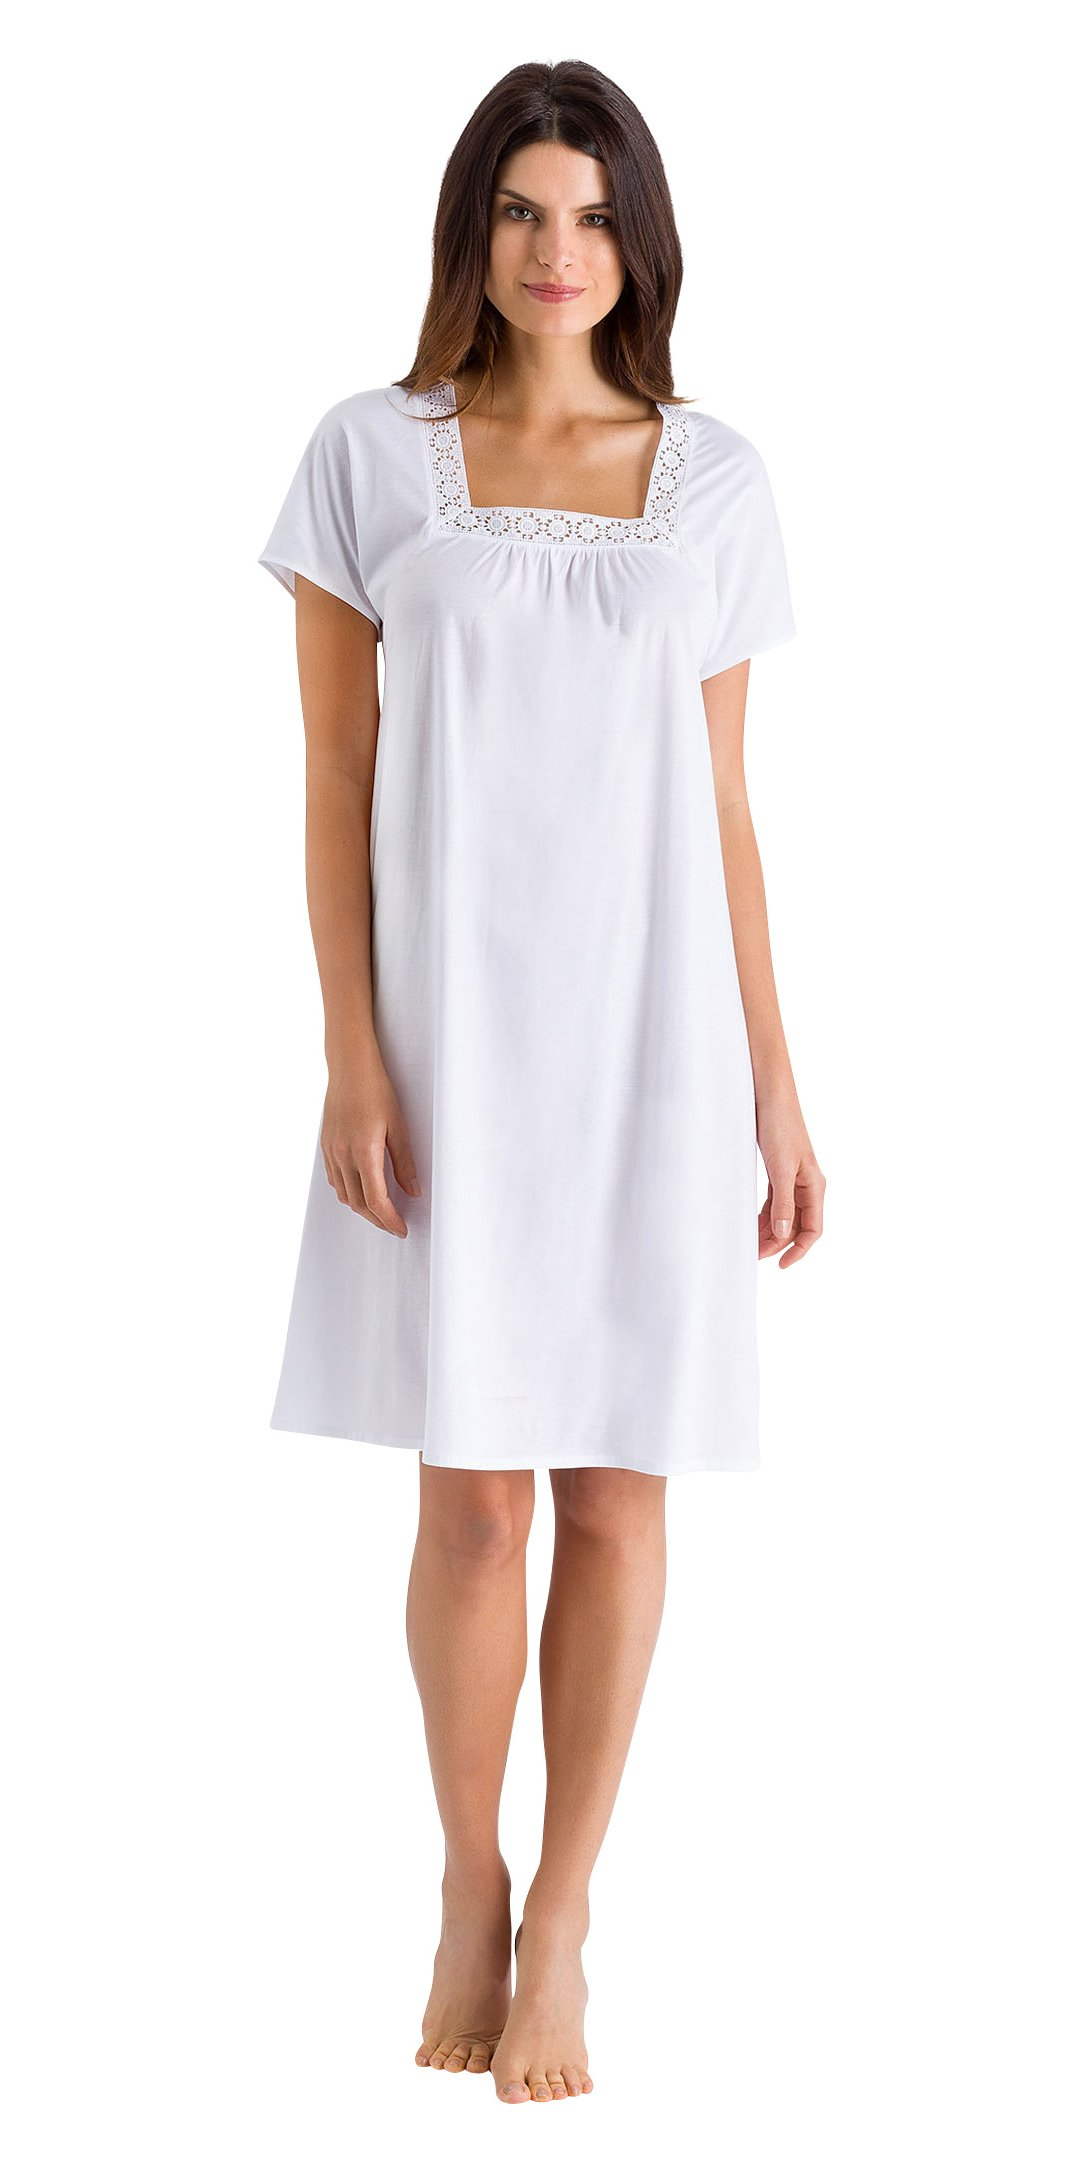 Hanro Women's Hazel Short Sleeve Gown, White, Large by HANRO (Image #1)